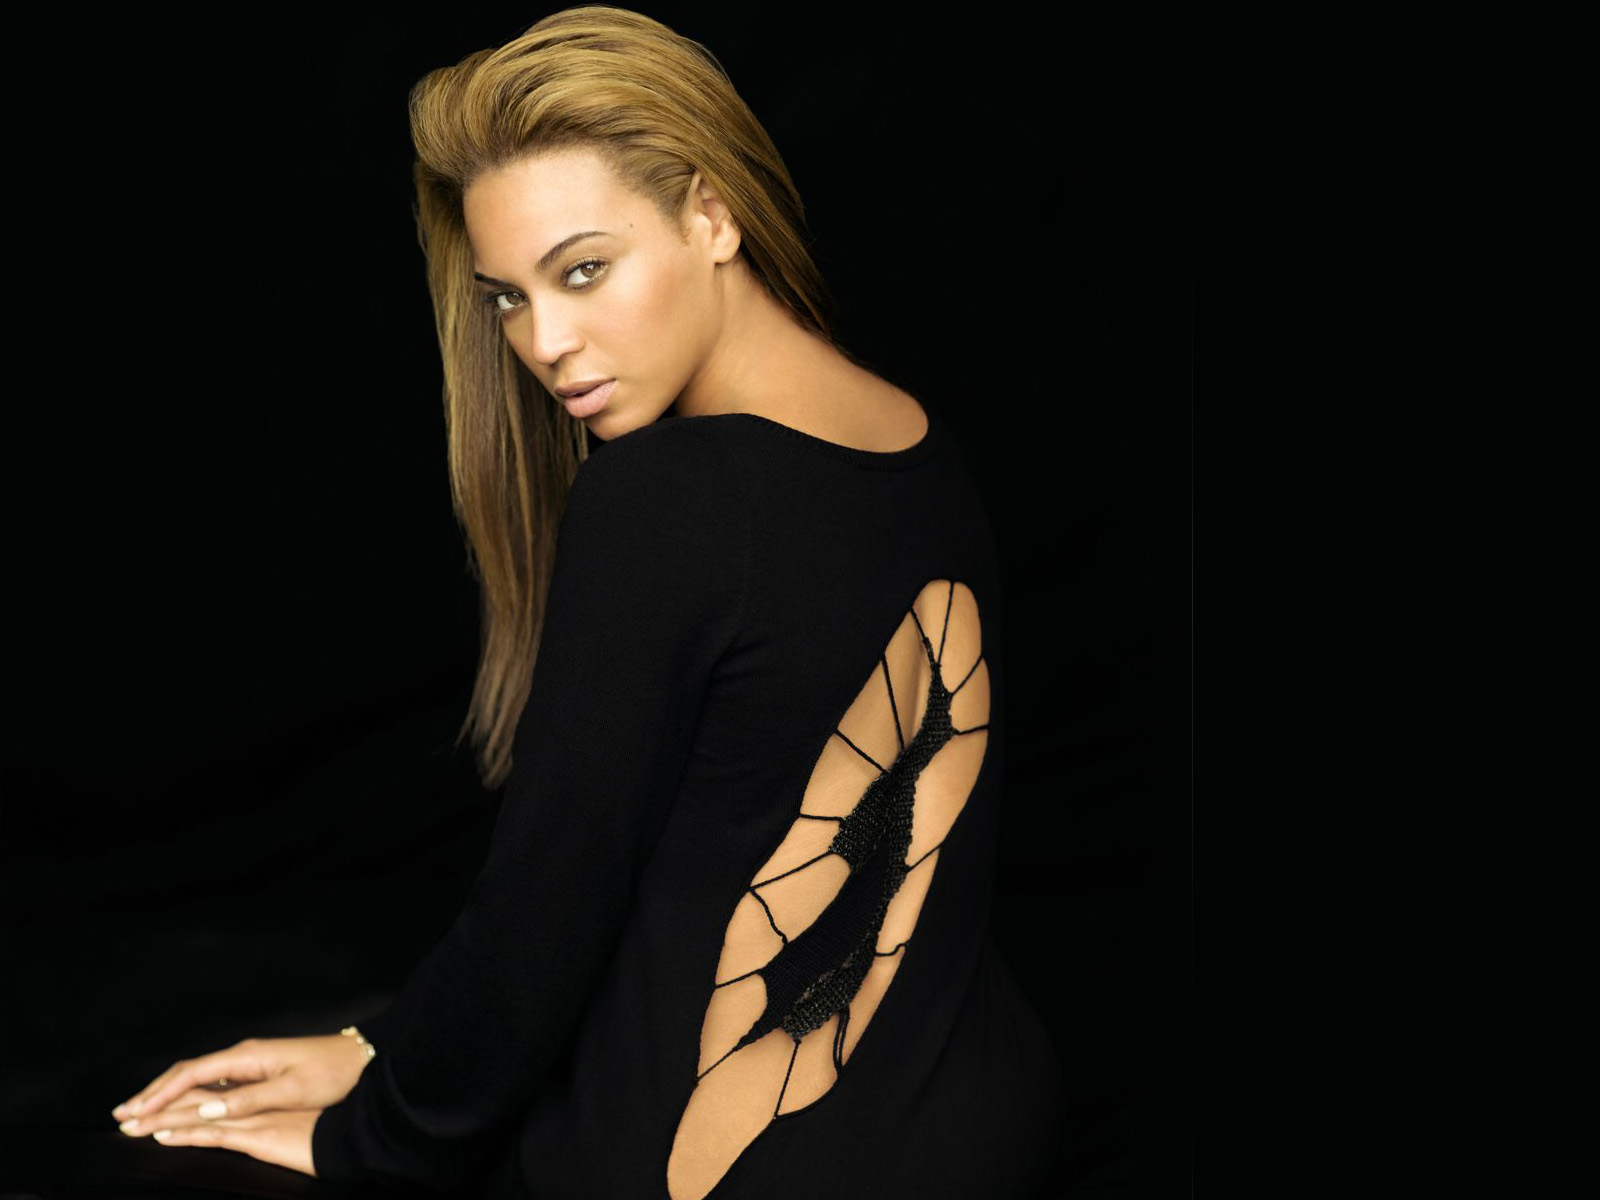 Beyonce Knowles In Black Dress 1600x1200 STANDARD Image 1600x1200